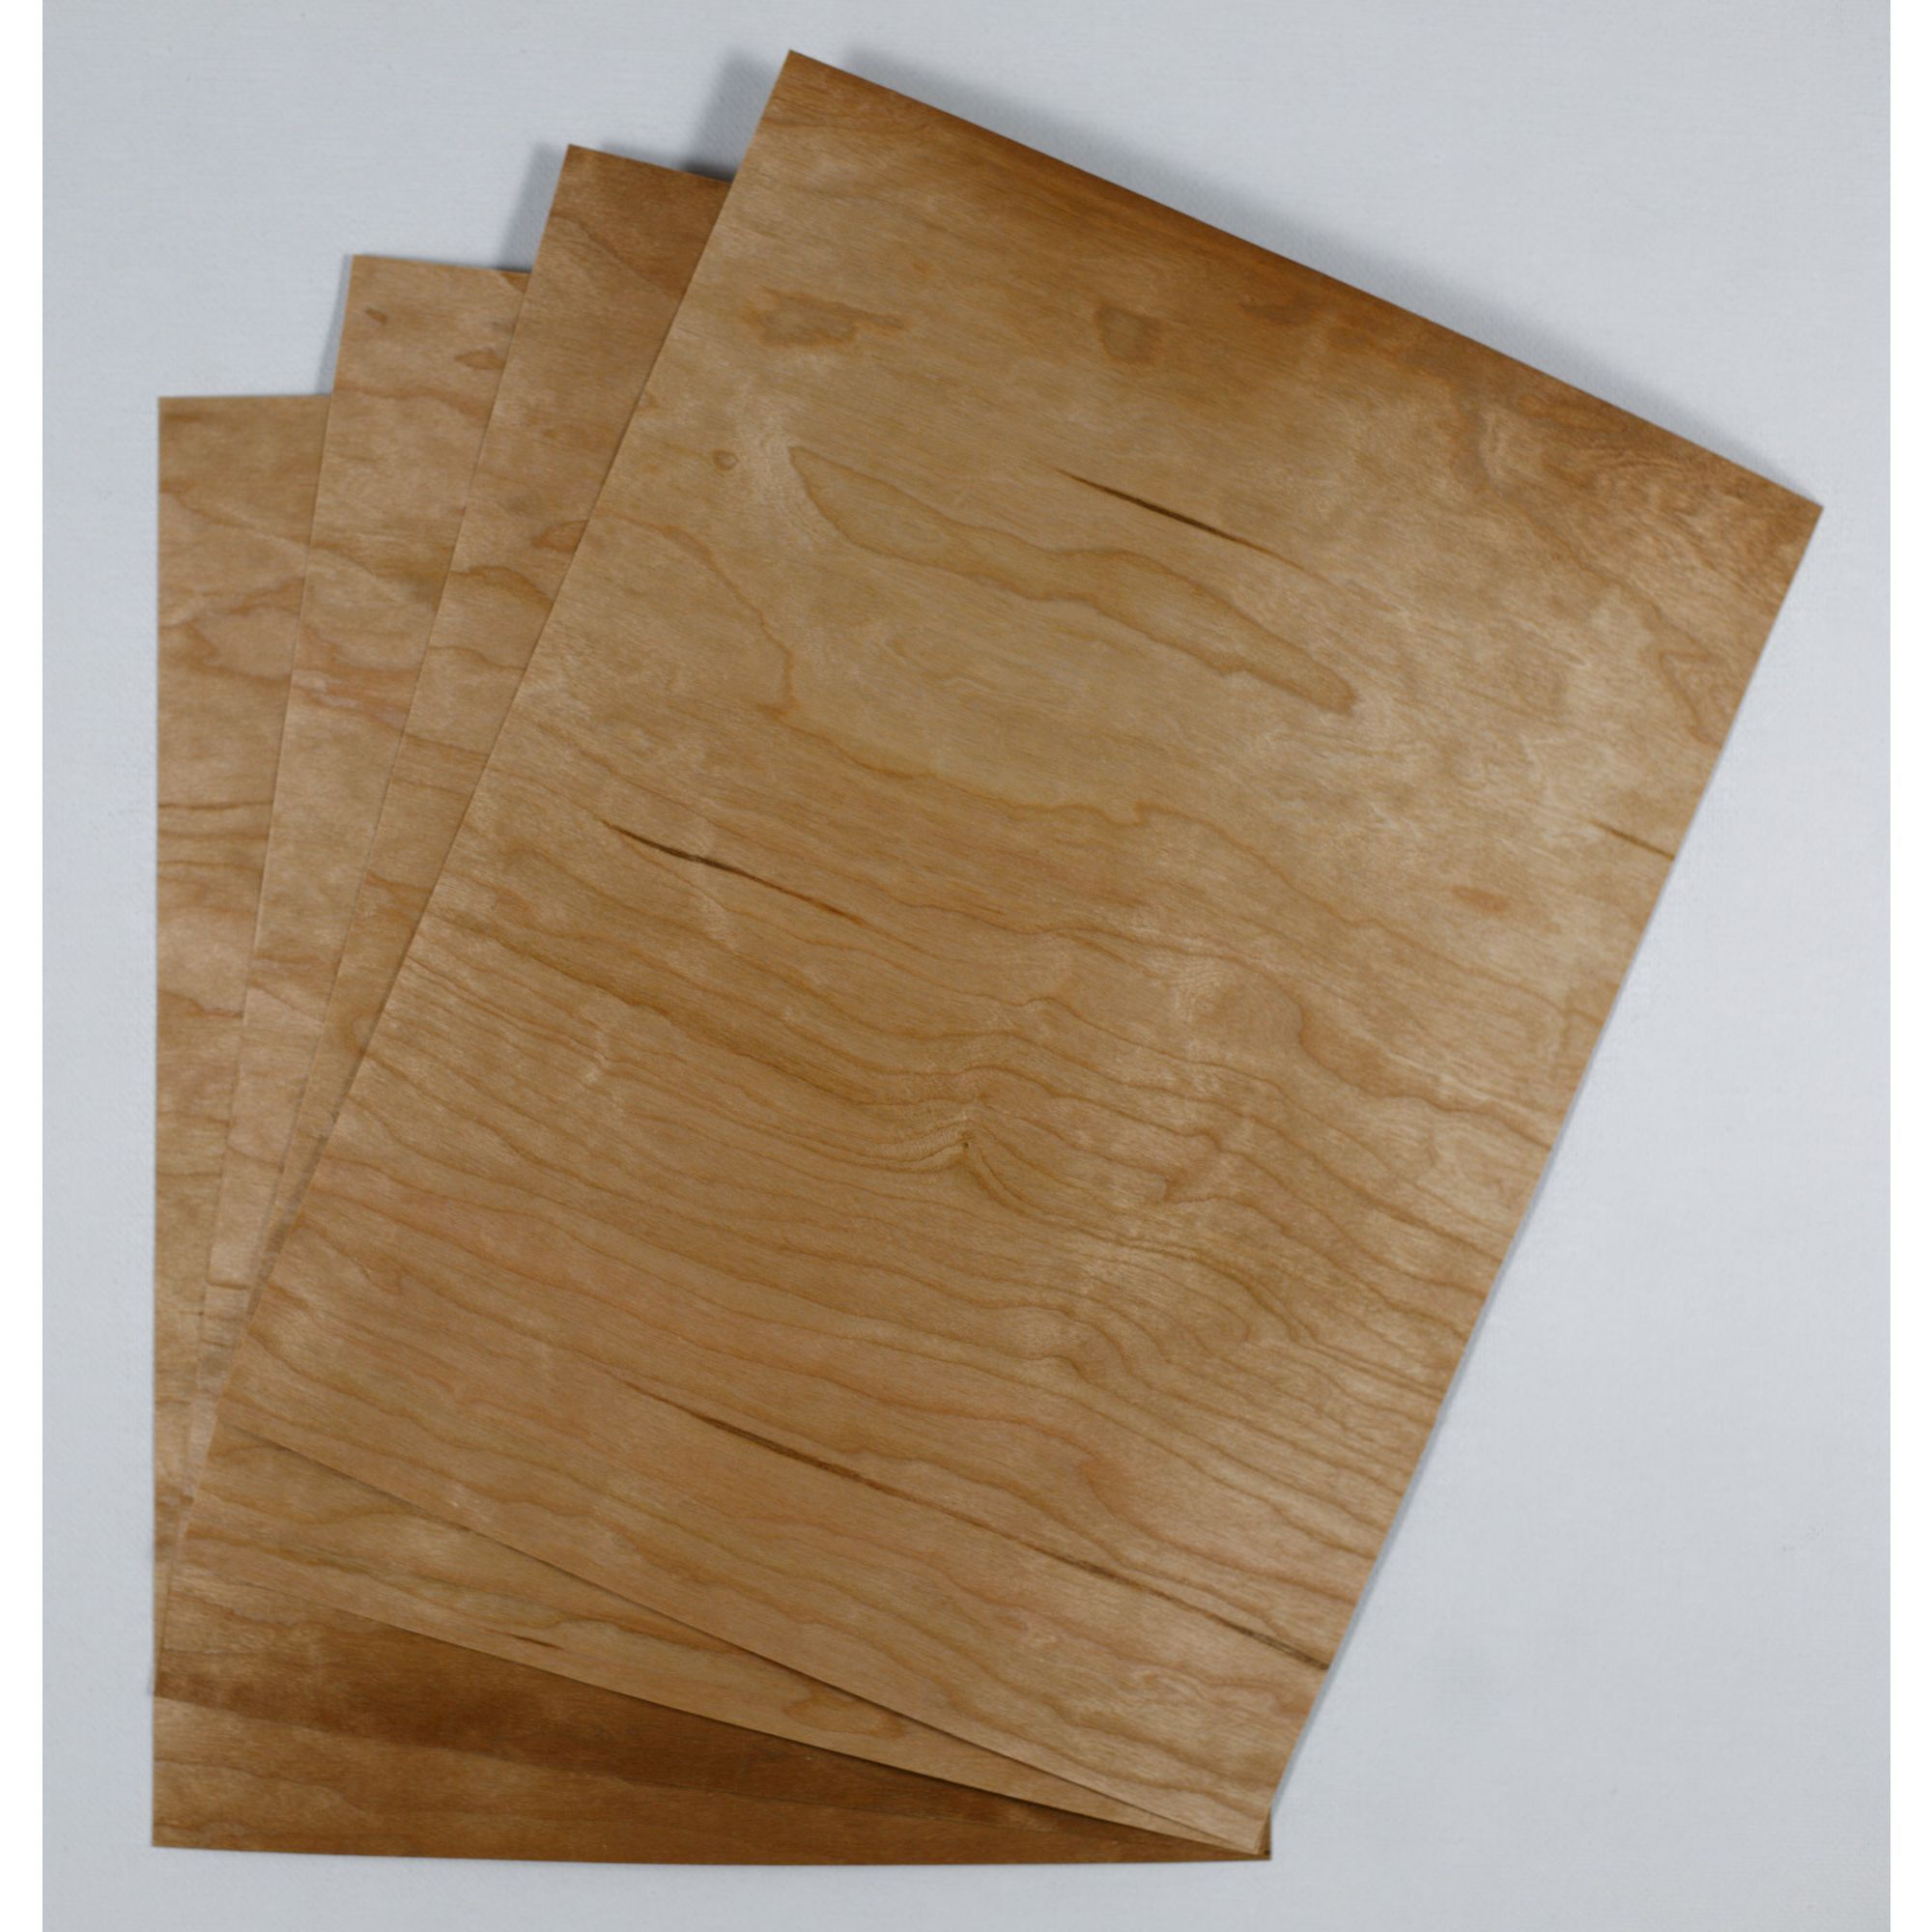 Crafters Wood Paper 8 5 X 11 12pt Cherry Veneer Sheets With Kraft Back Wood Veneer Wood Veneers